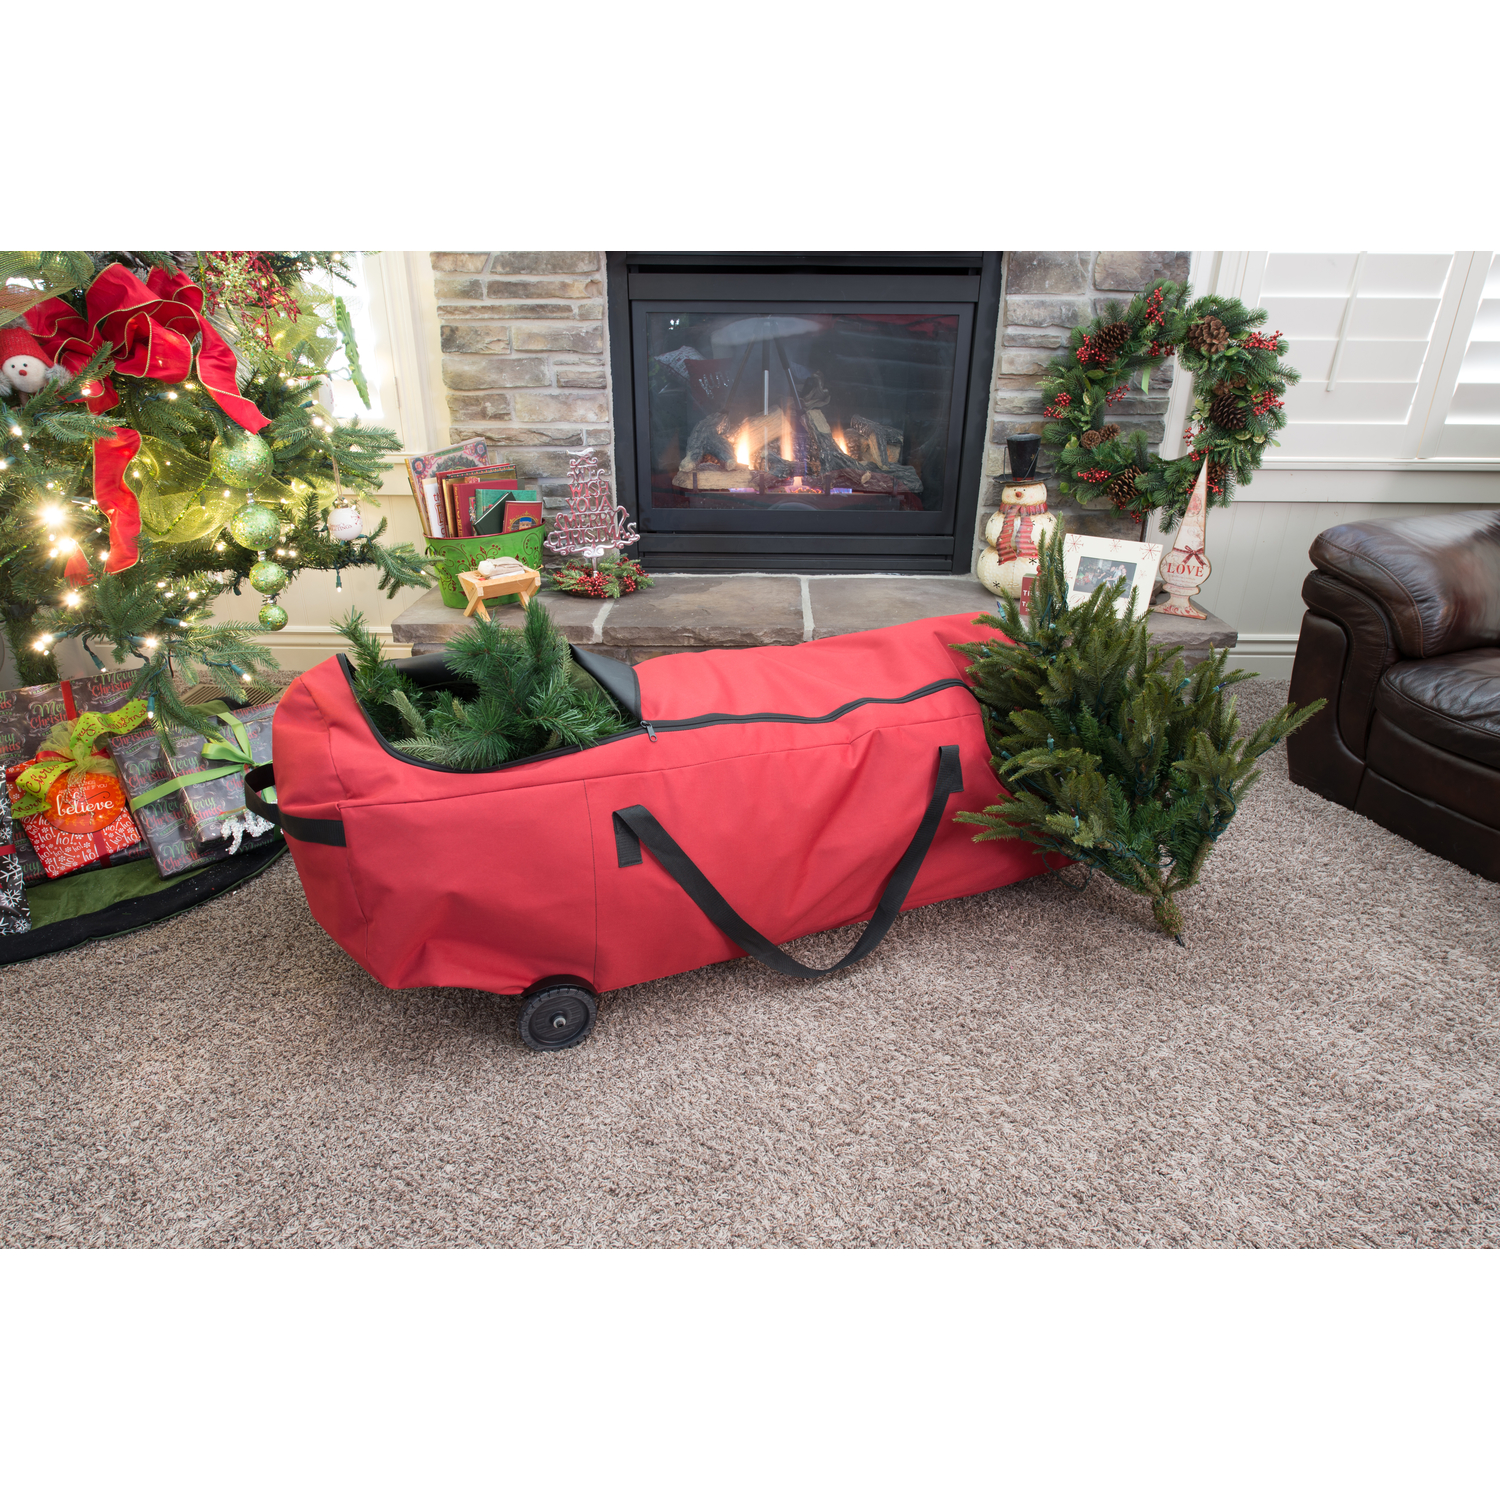 Santa's Bags Patent Pending EZ Roller Tree Storage Duffel. Easy to store your artificial tree and roll it away.